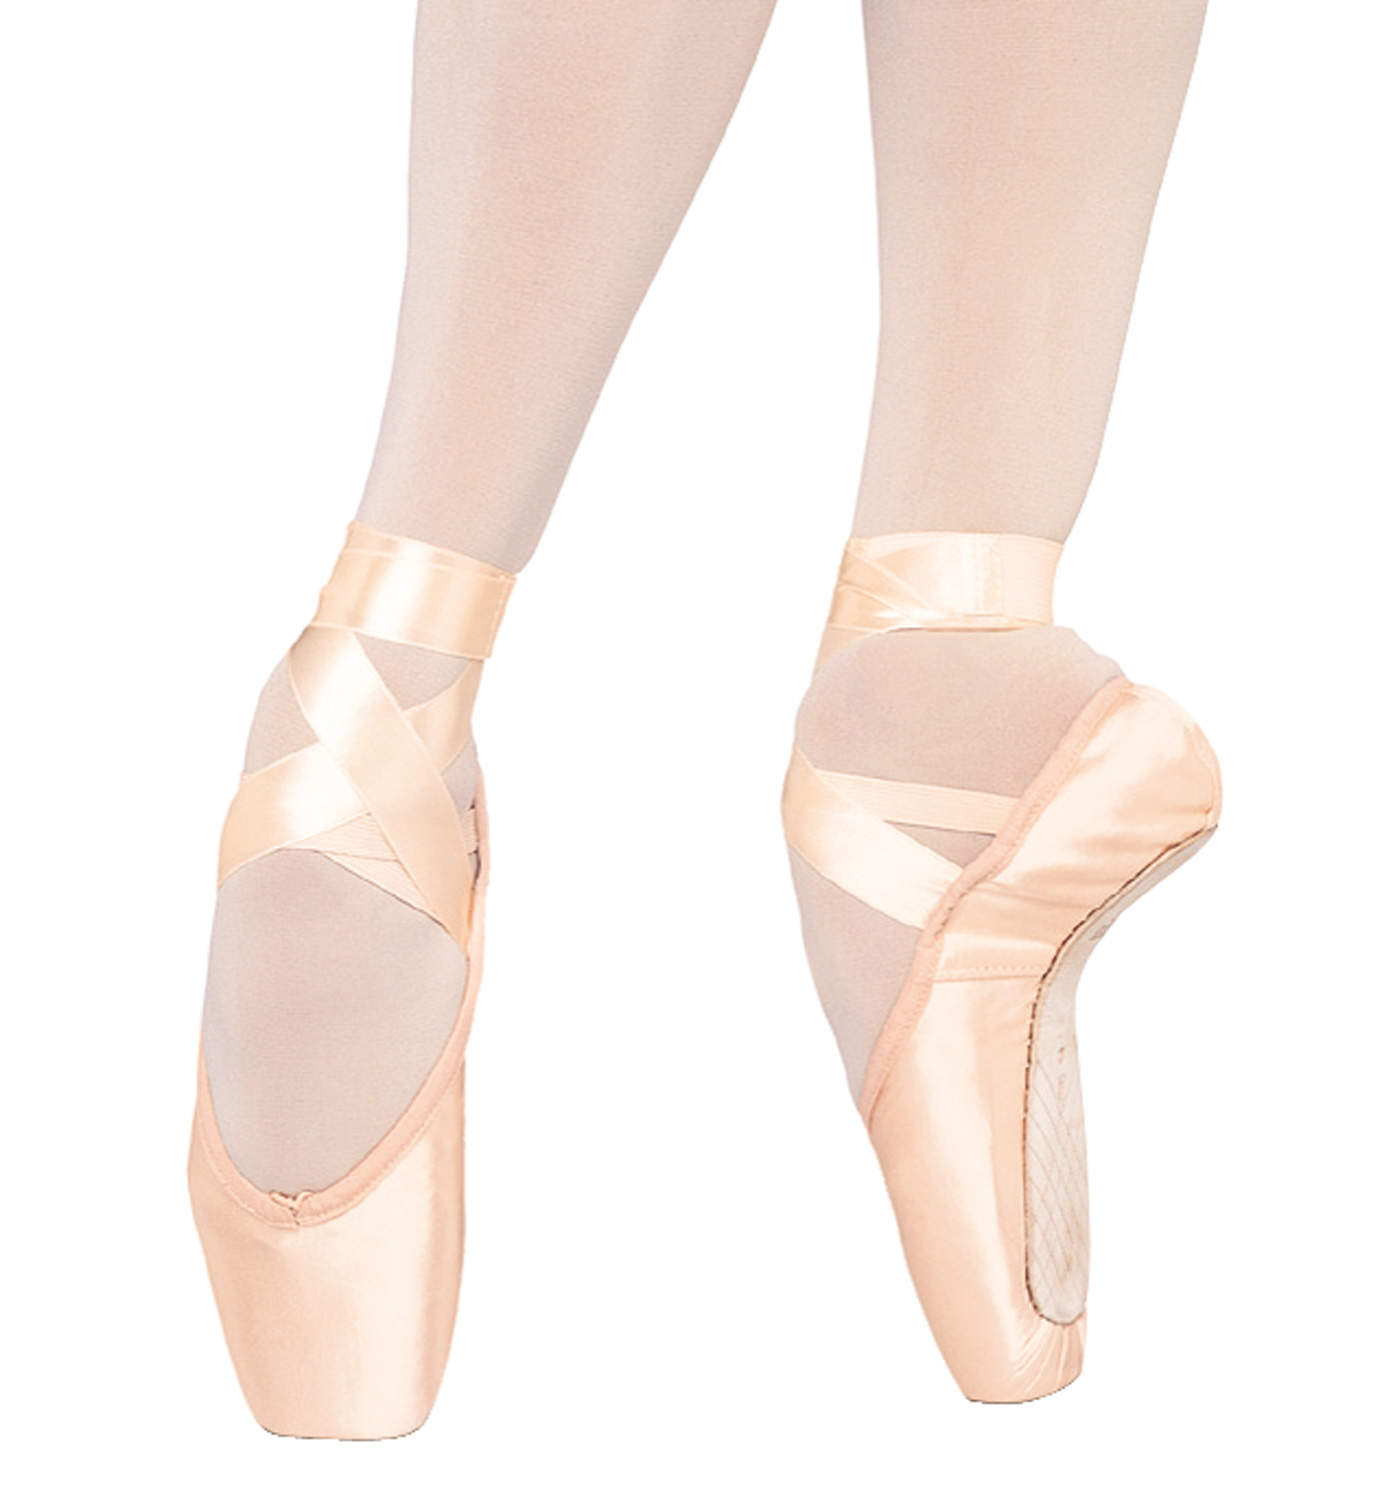 Sizing Of Ballet Shoes